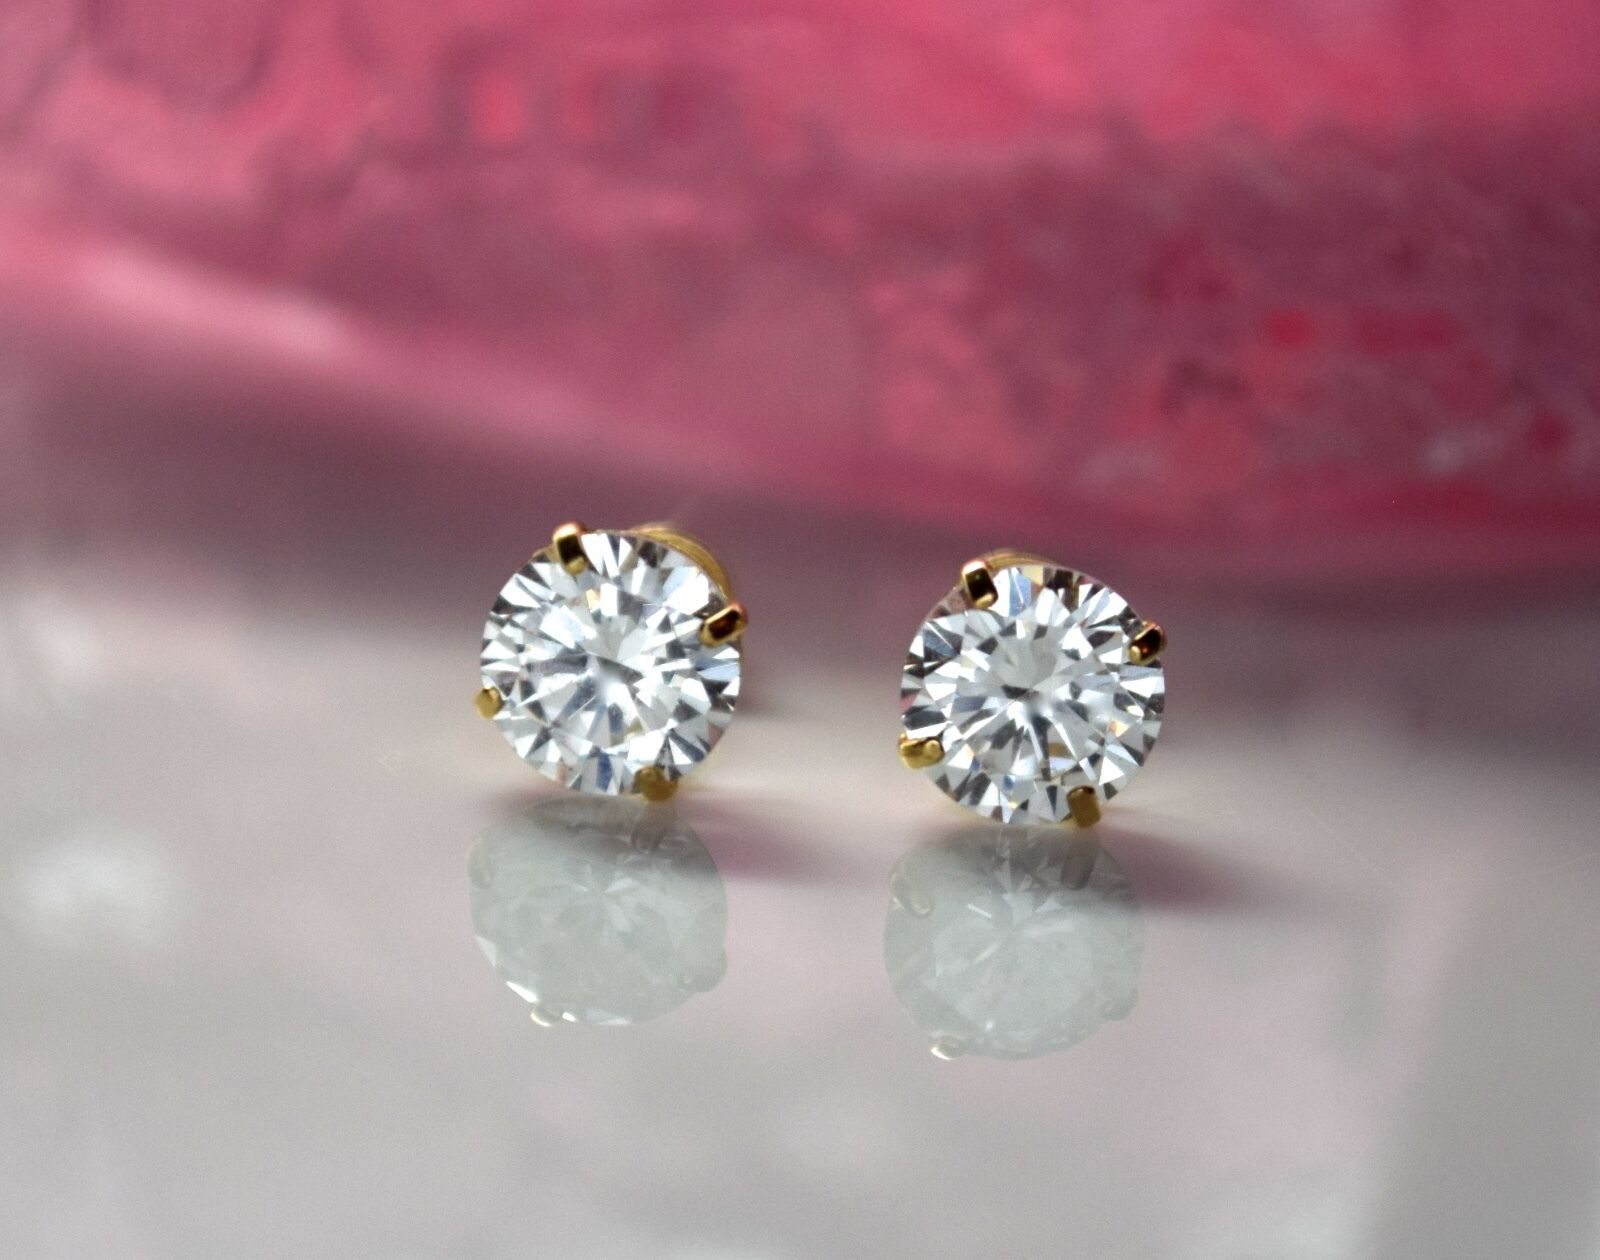 $26.97 - 14k yellow gold basket set round created diamond screwback stud earrings